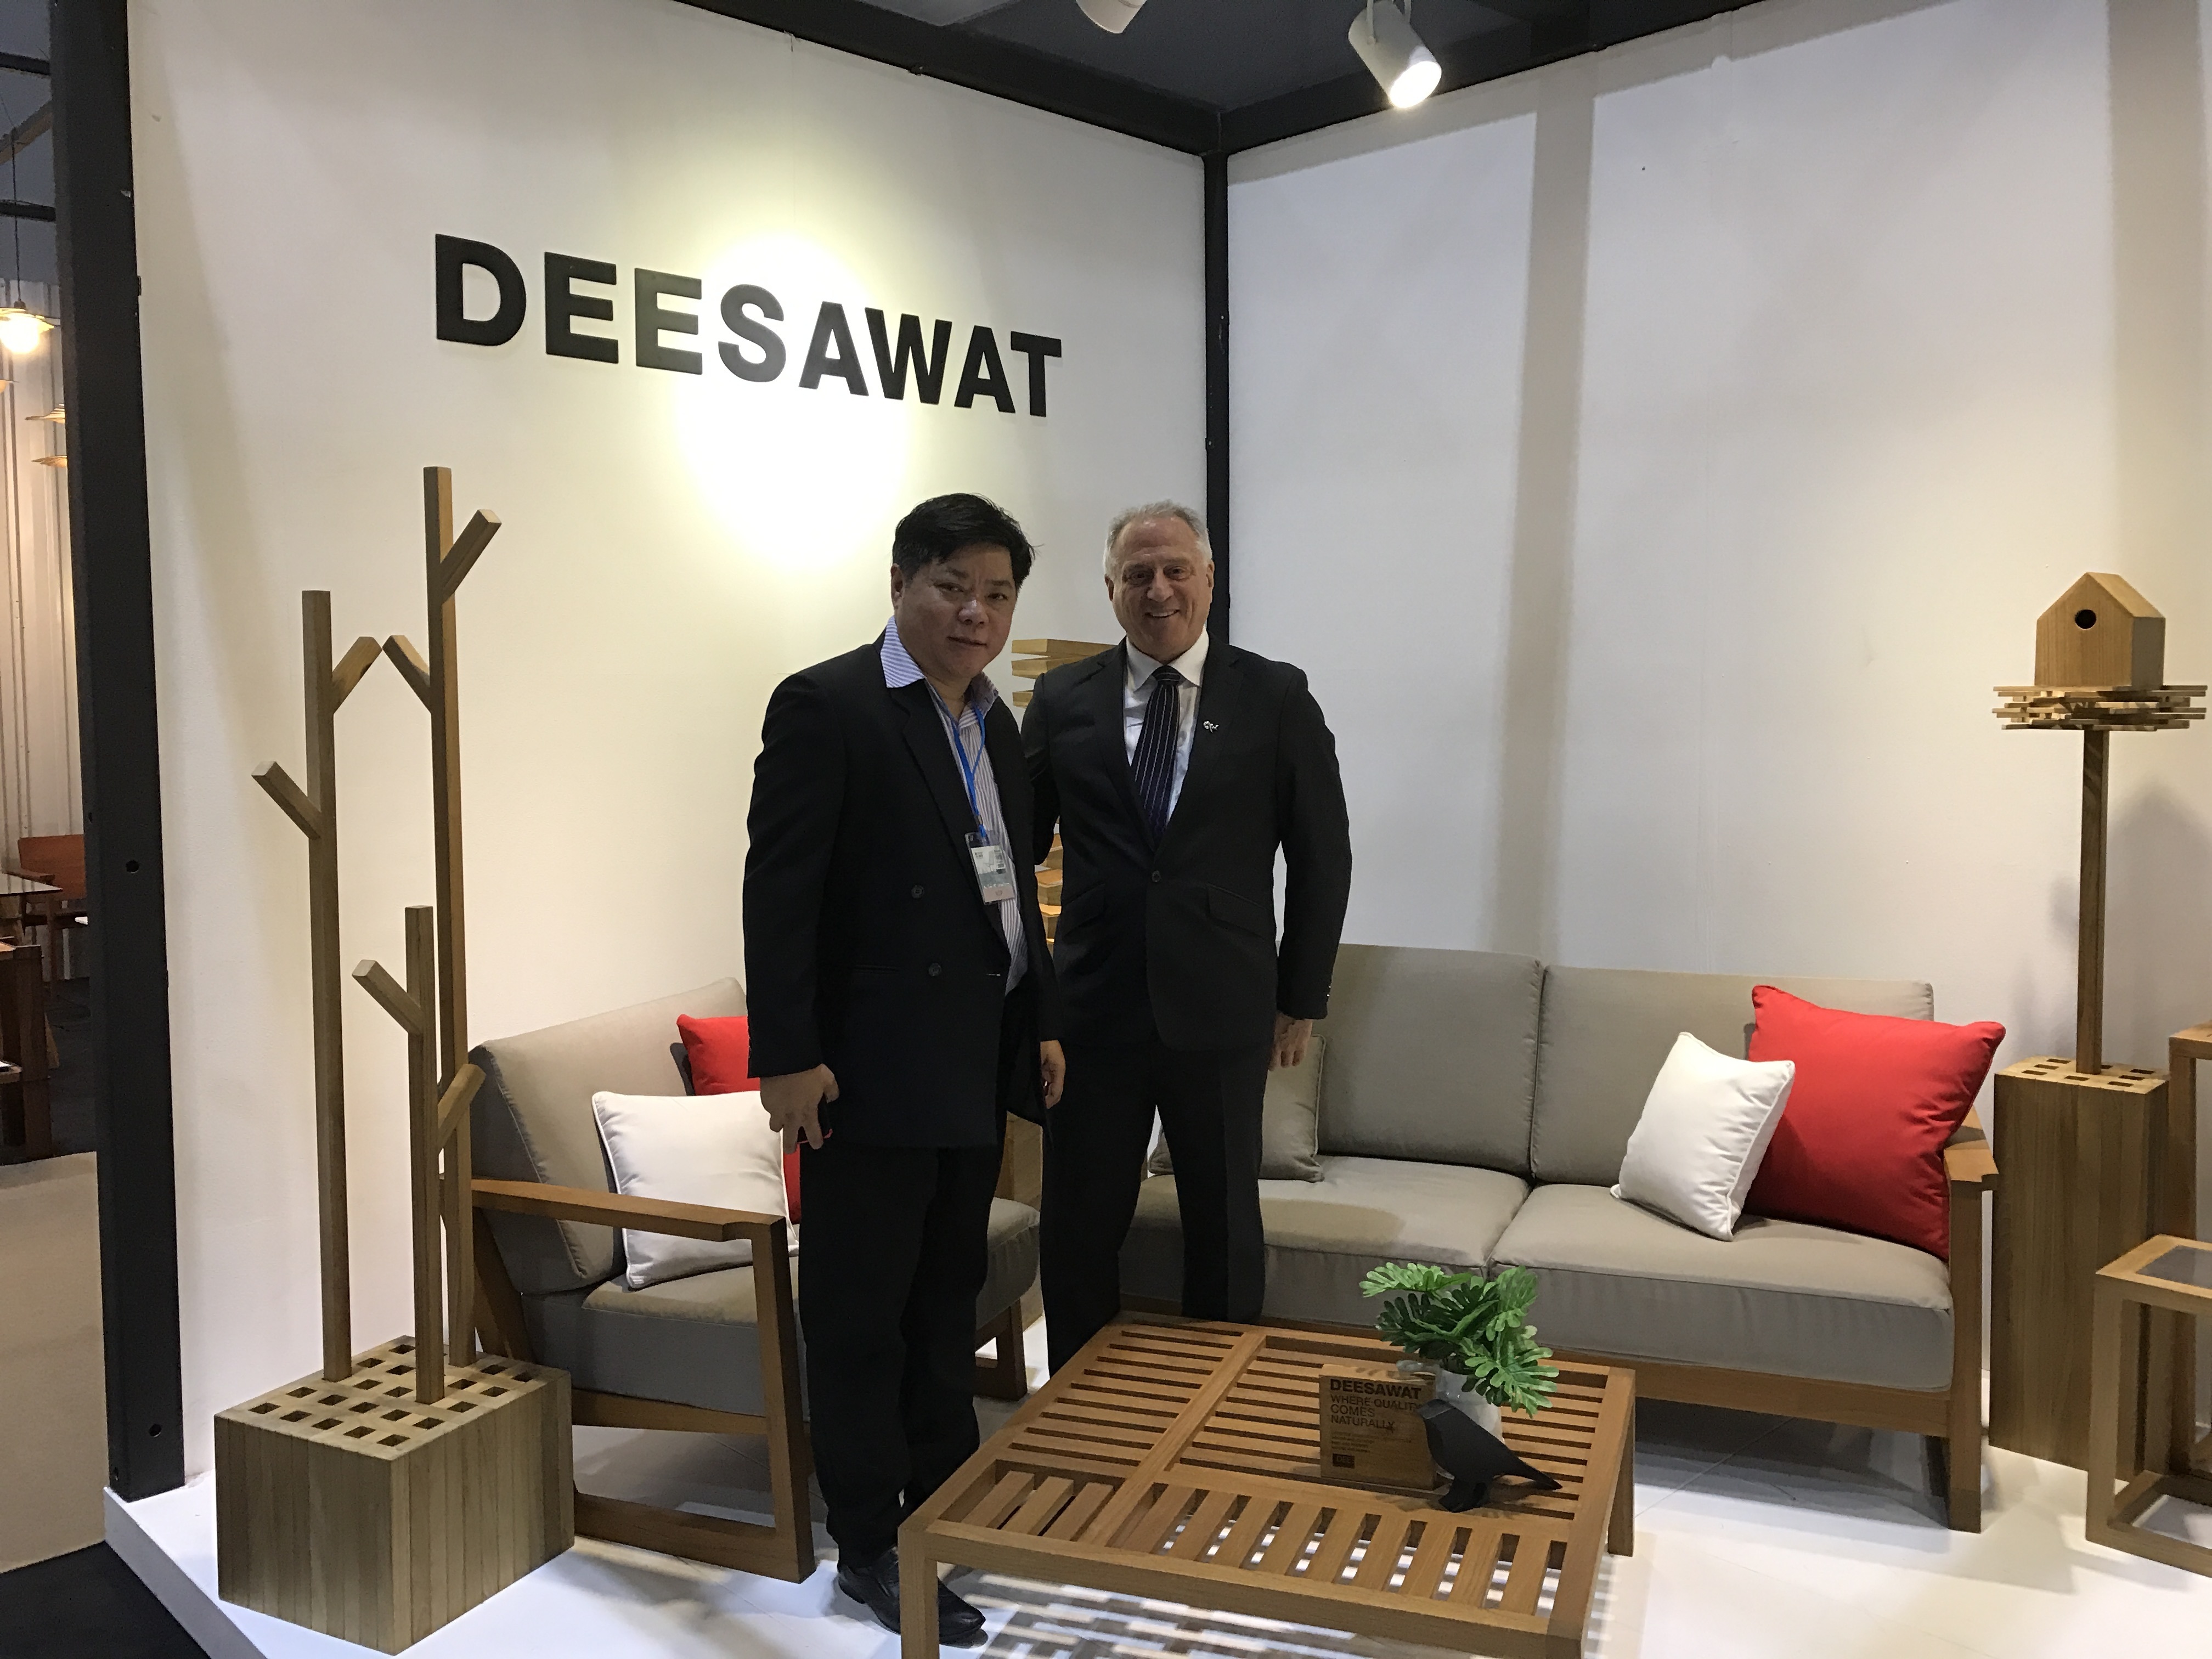 Deesawat Industries